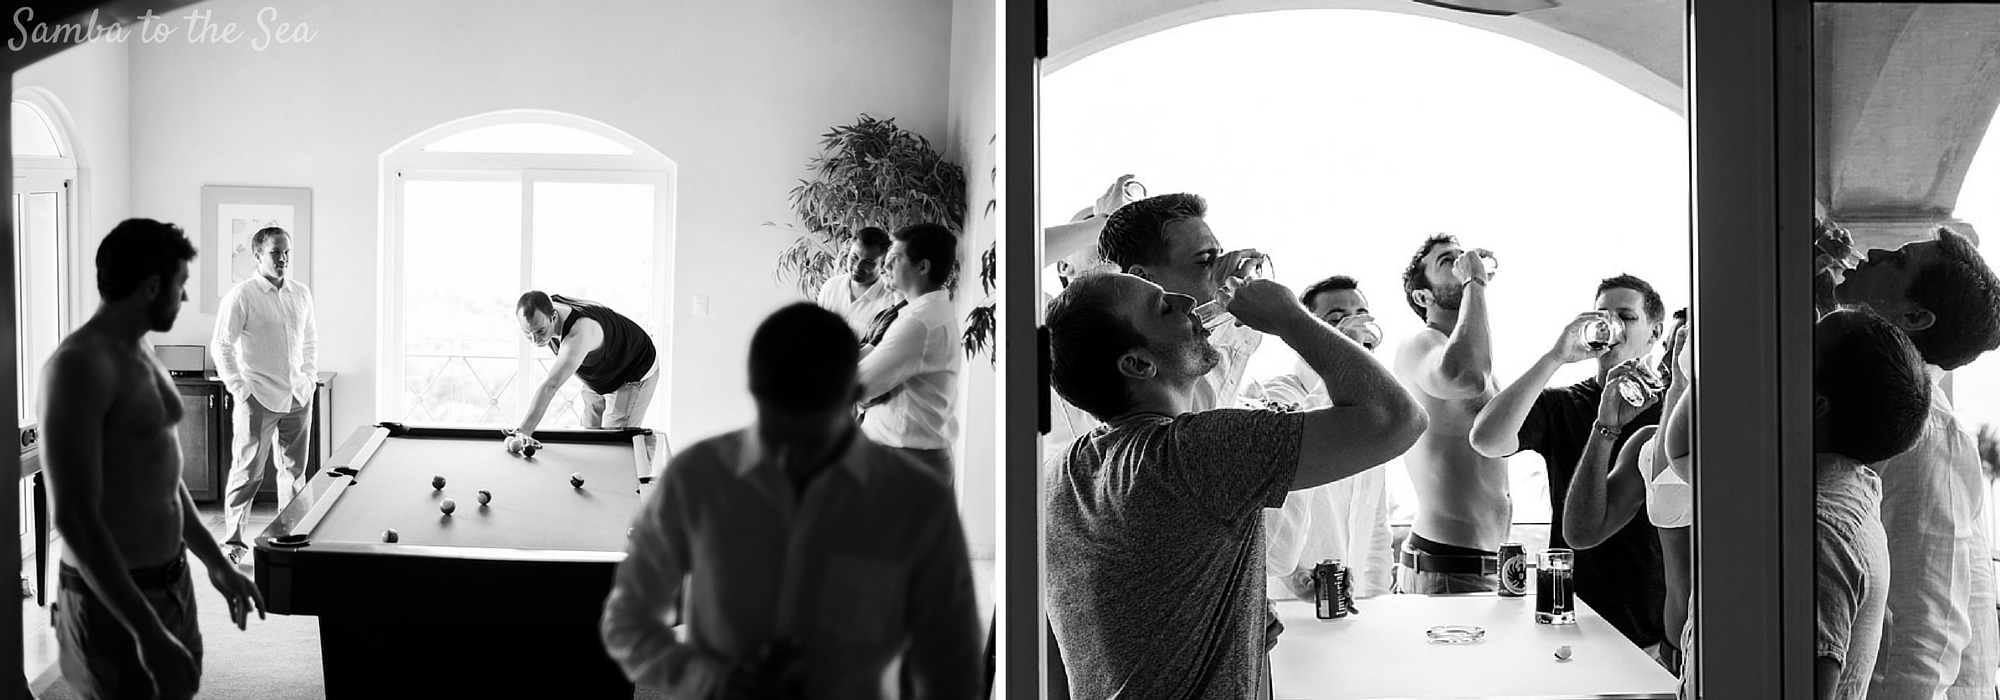 Groom and groomsmen getting ready at the Diria before wedding in Tamarindo, Costa Rica. Photographed by Kristen M. Brown, Samba to the Sea Photography.